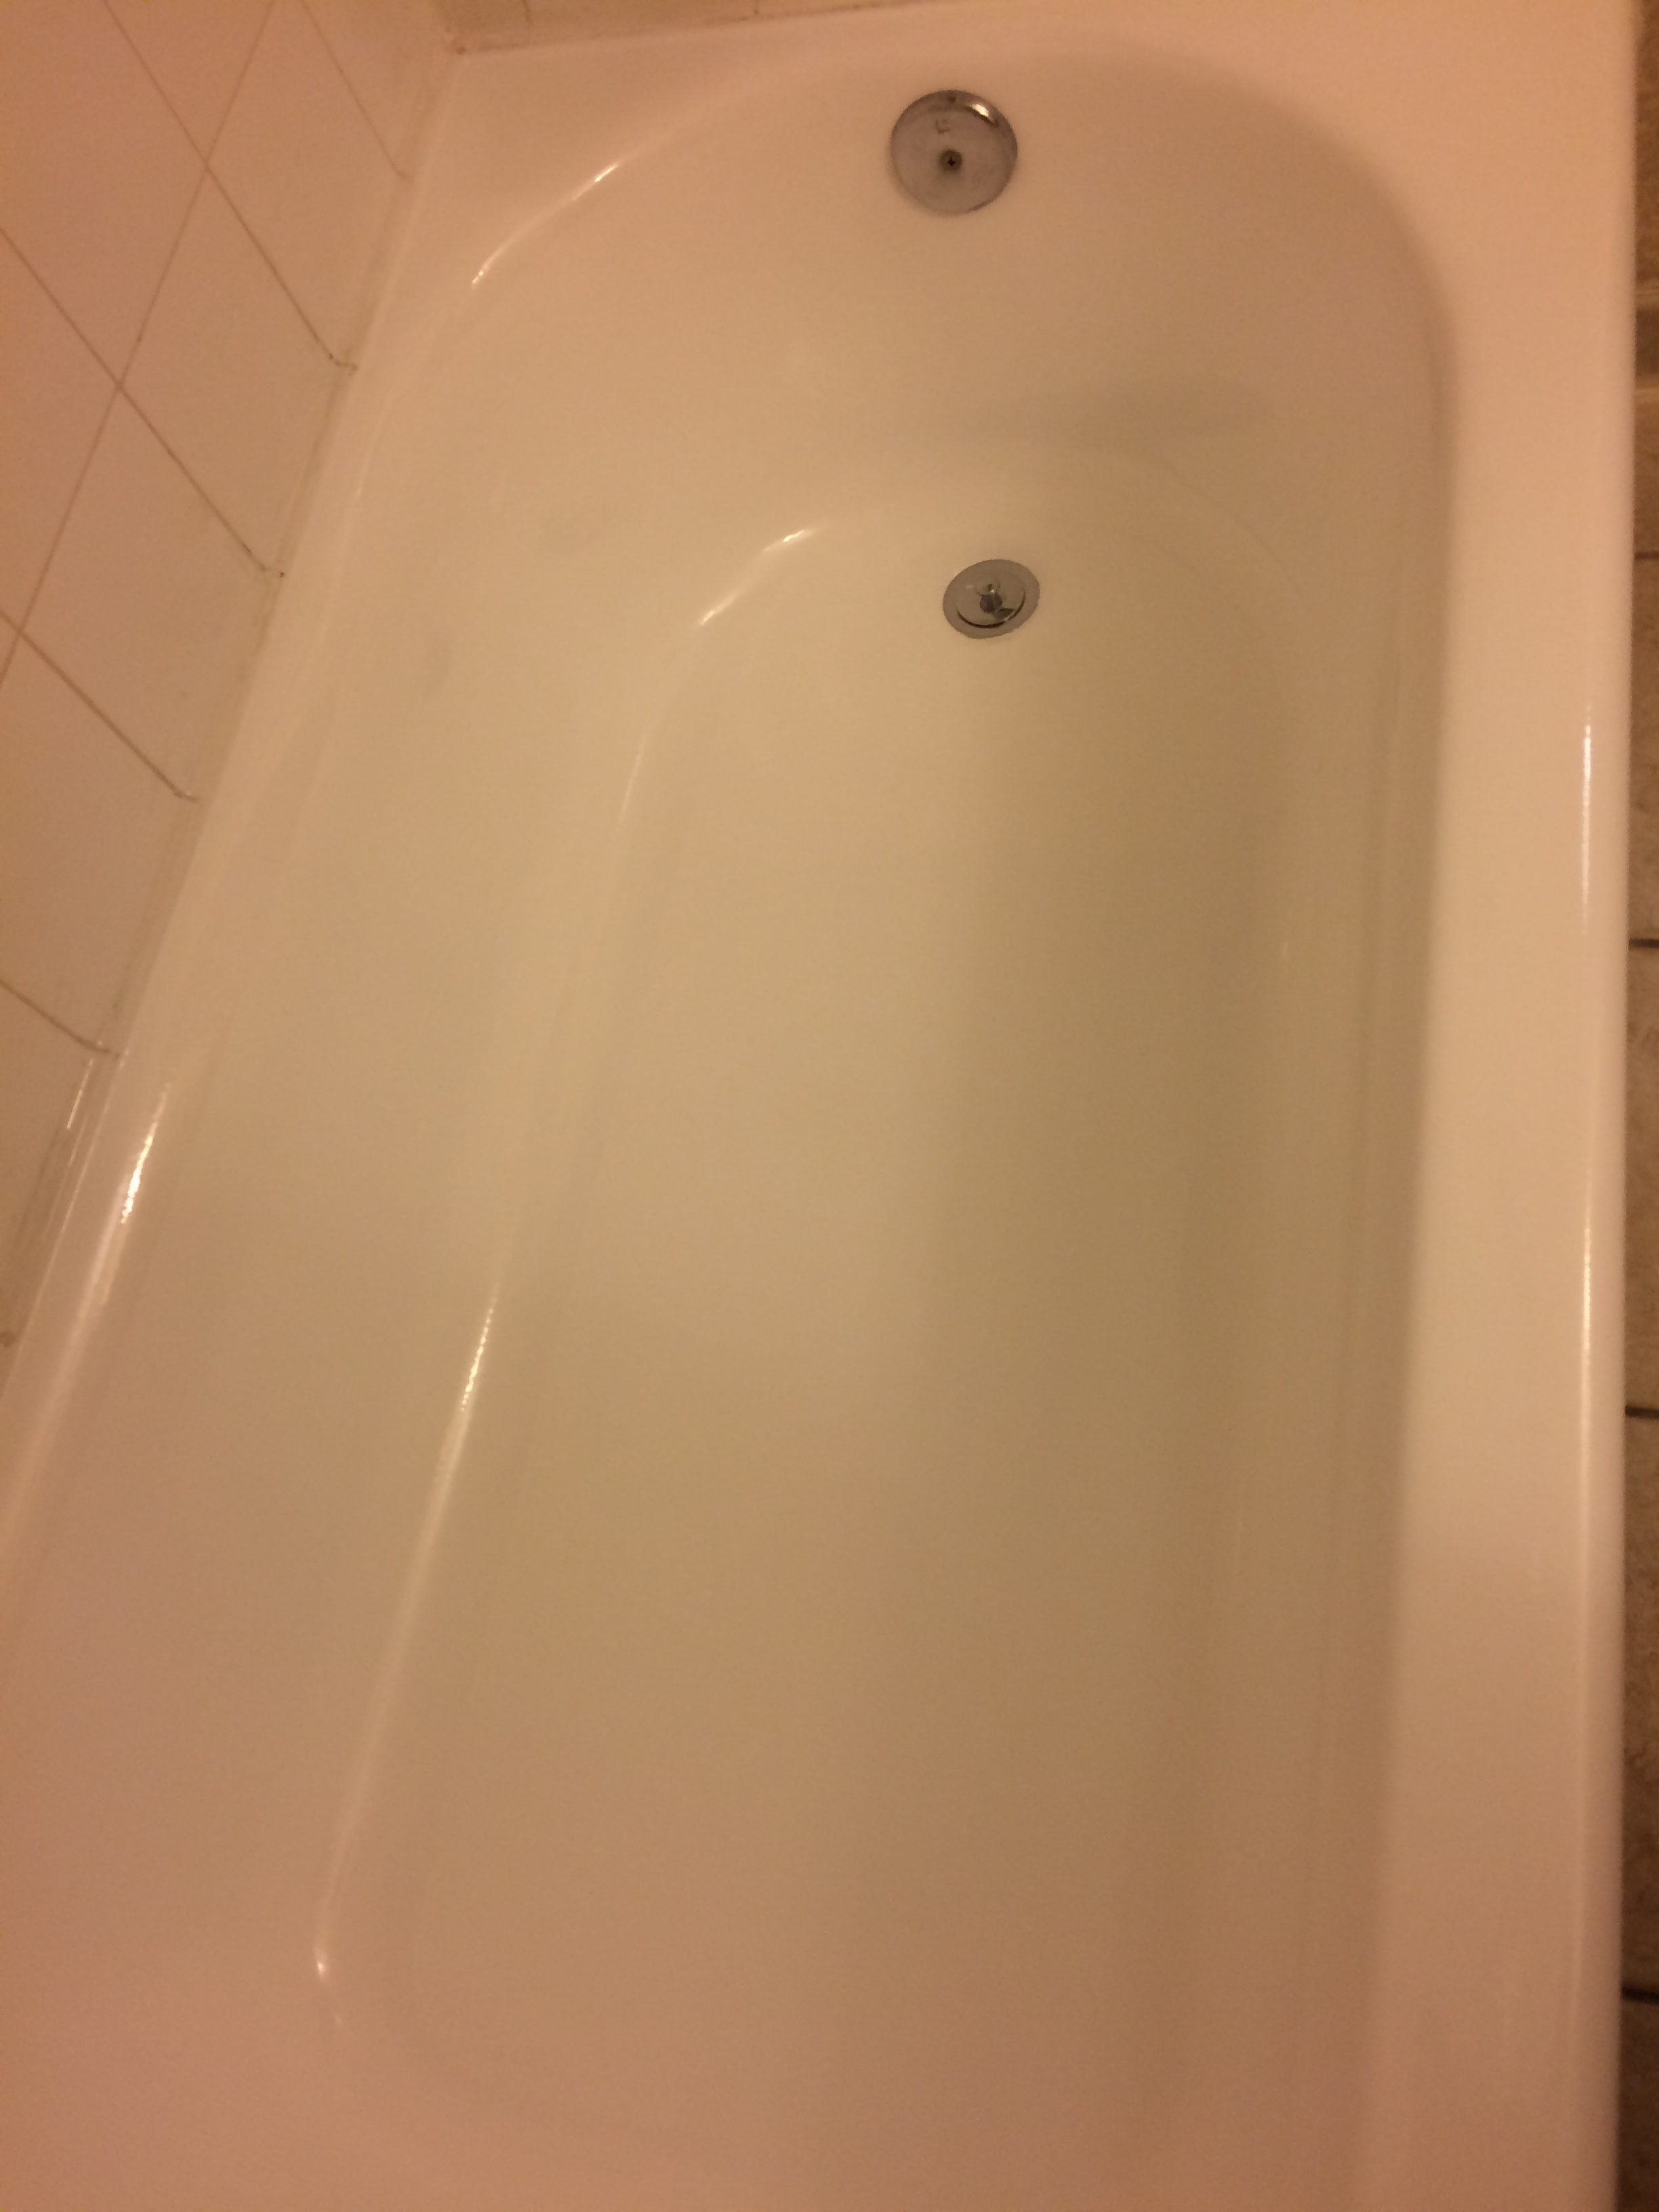 Hilton after- tub with new coating